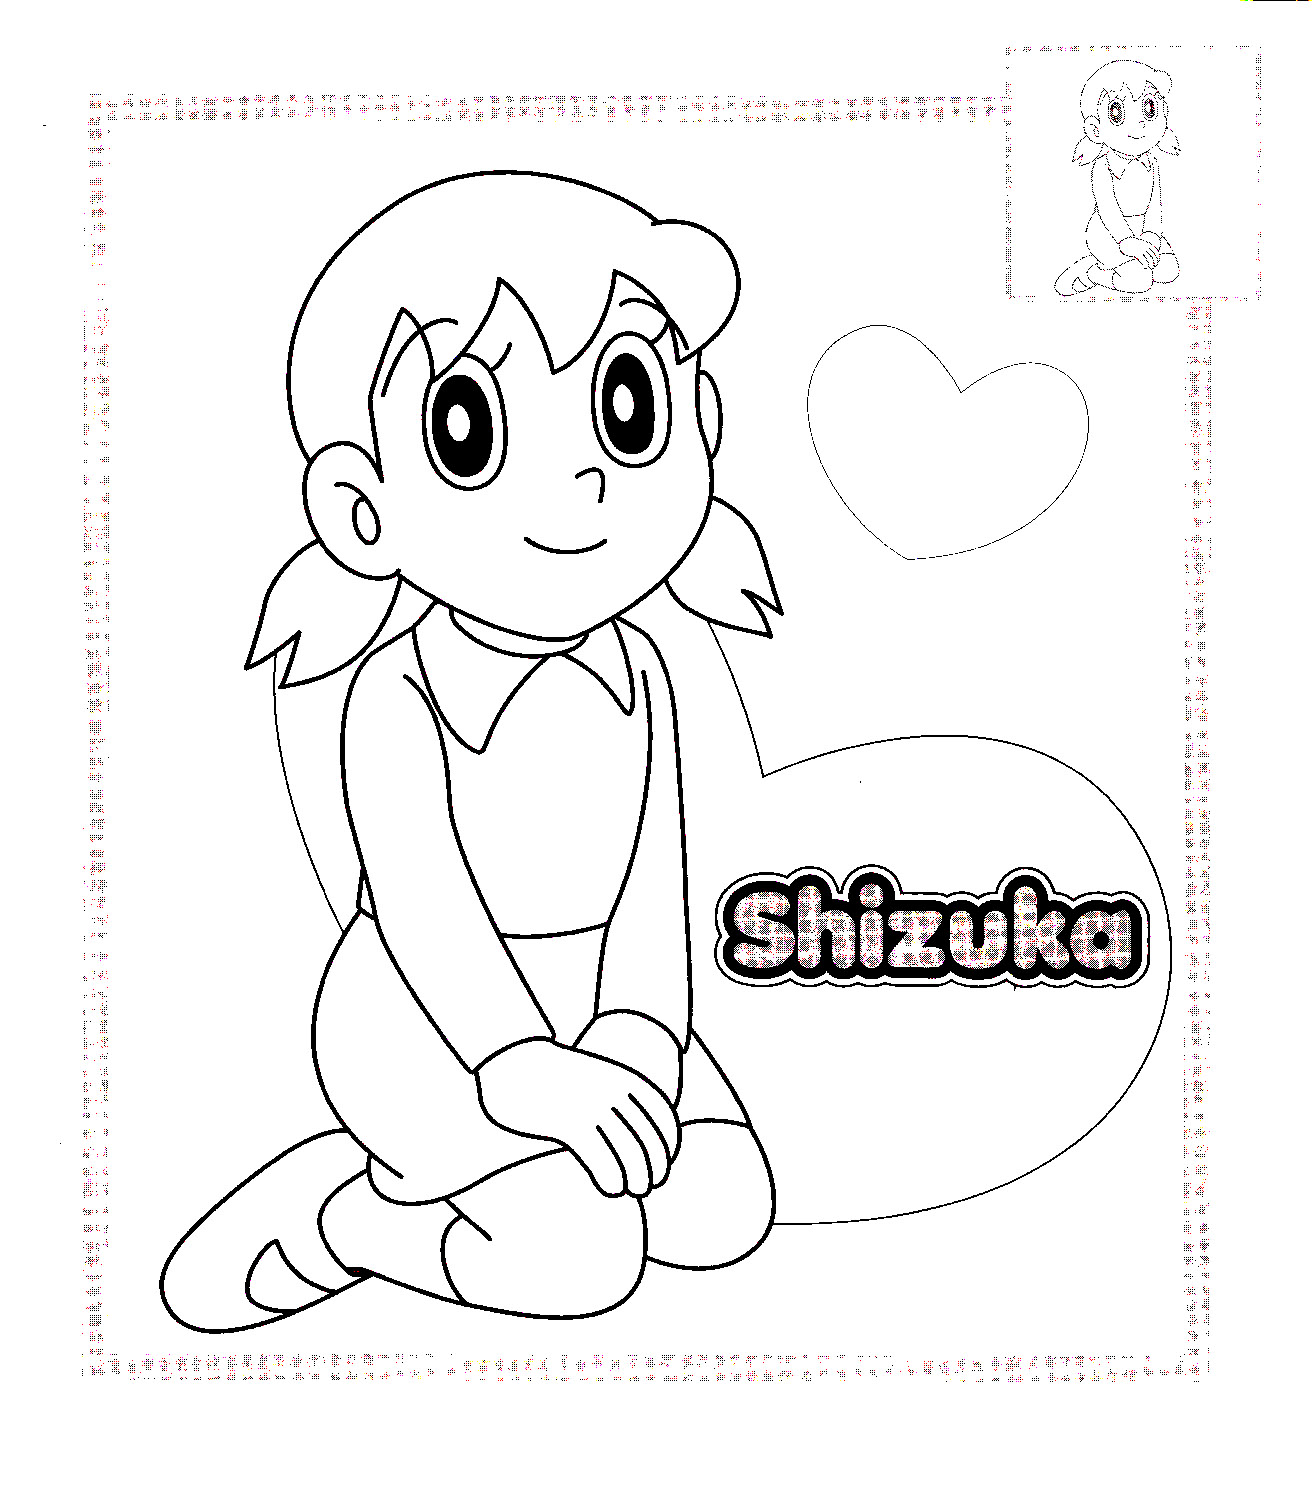 Doraemon Coloring in Pages 4